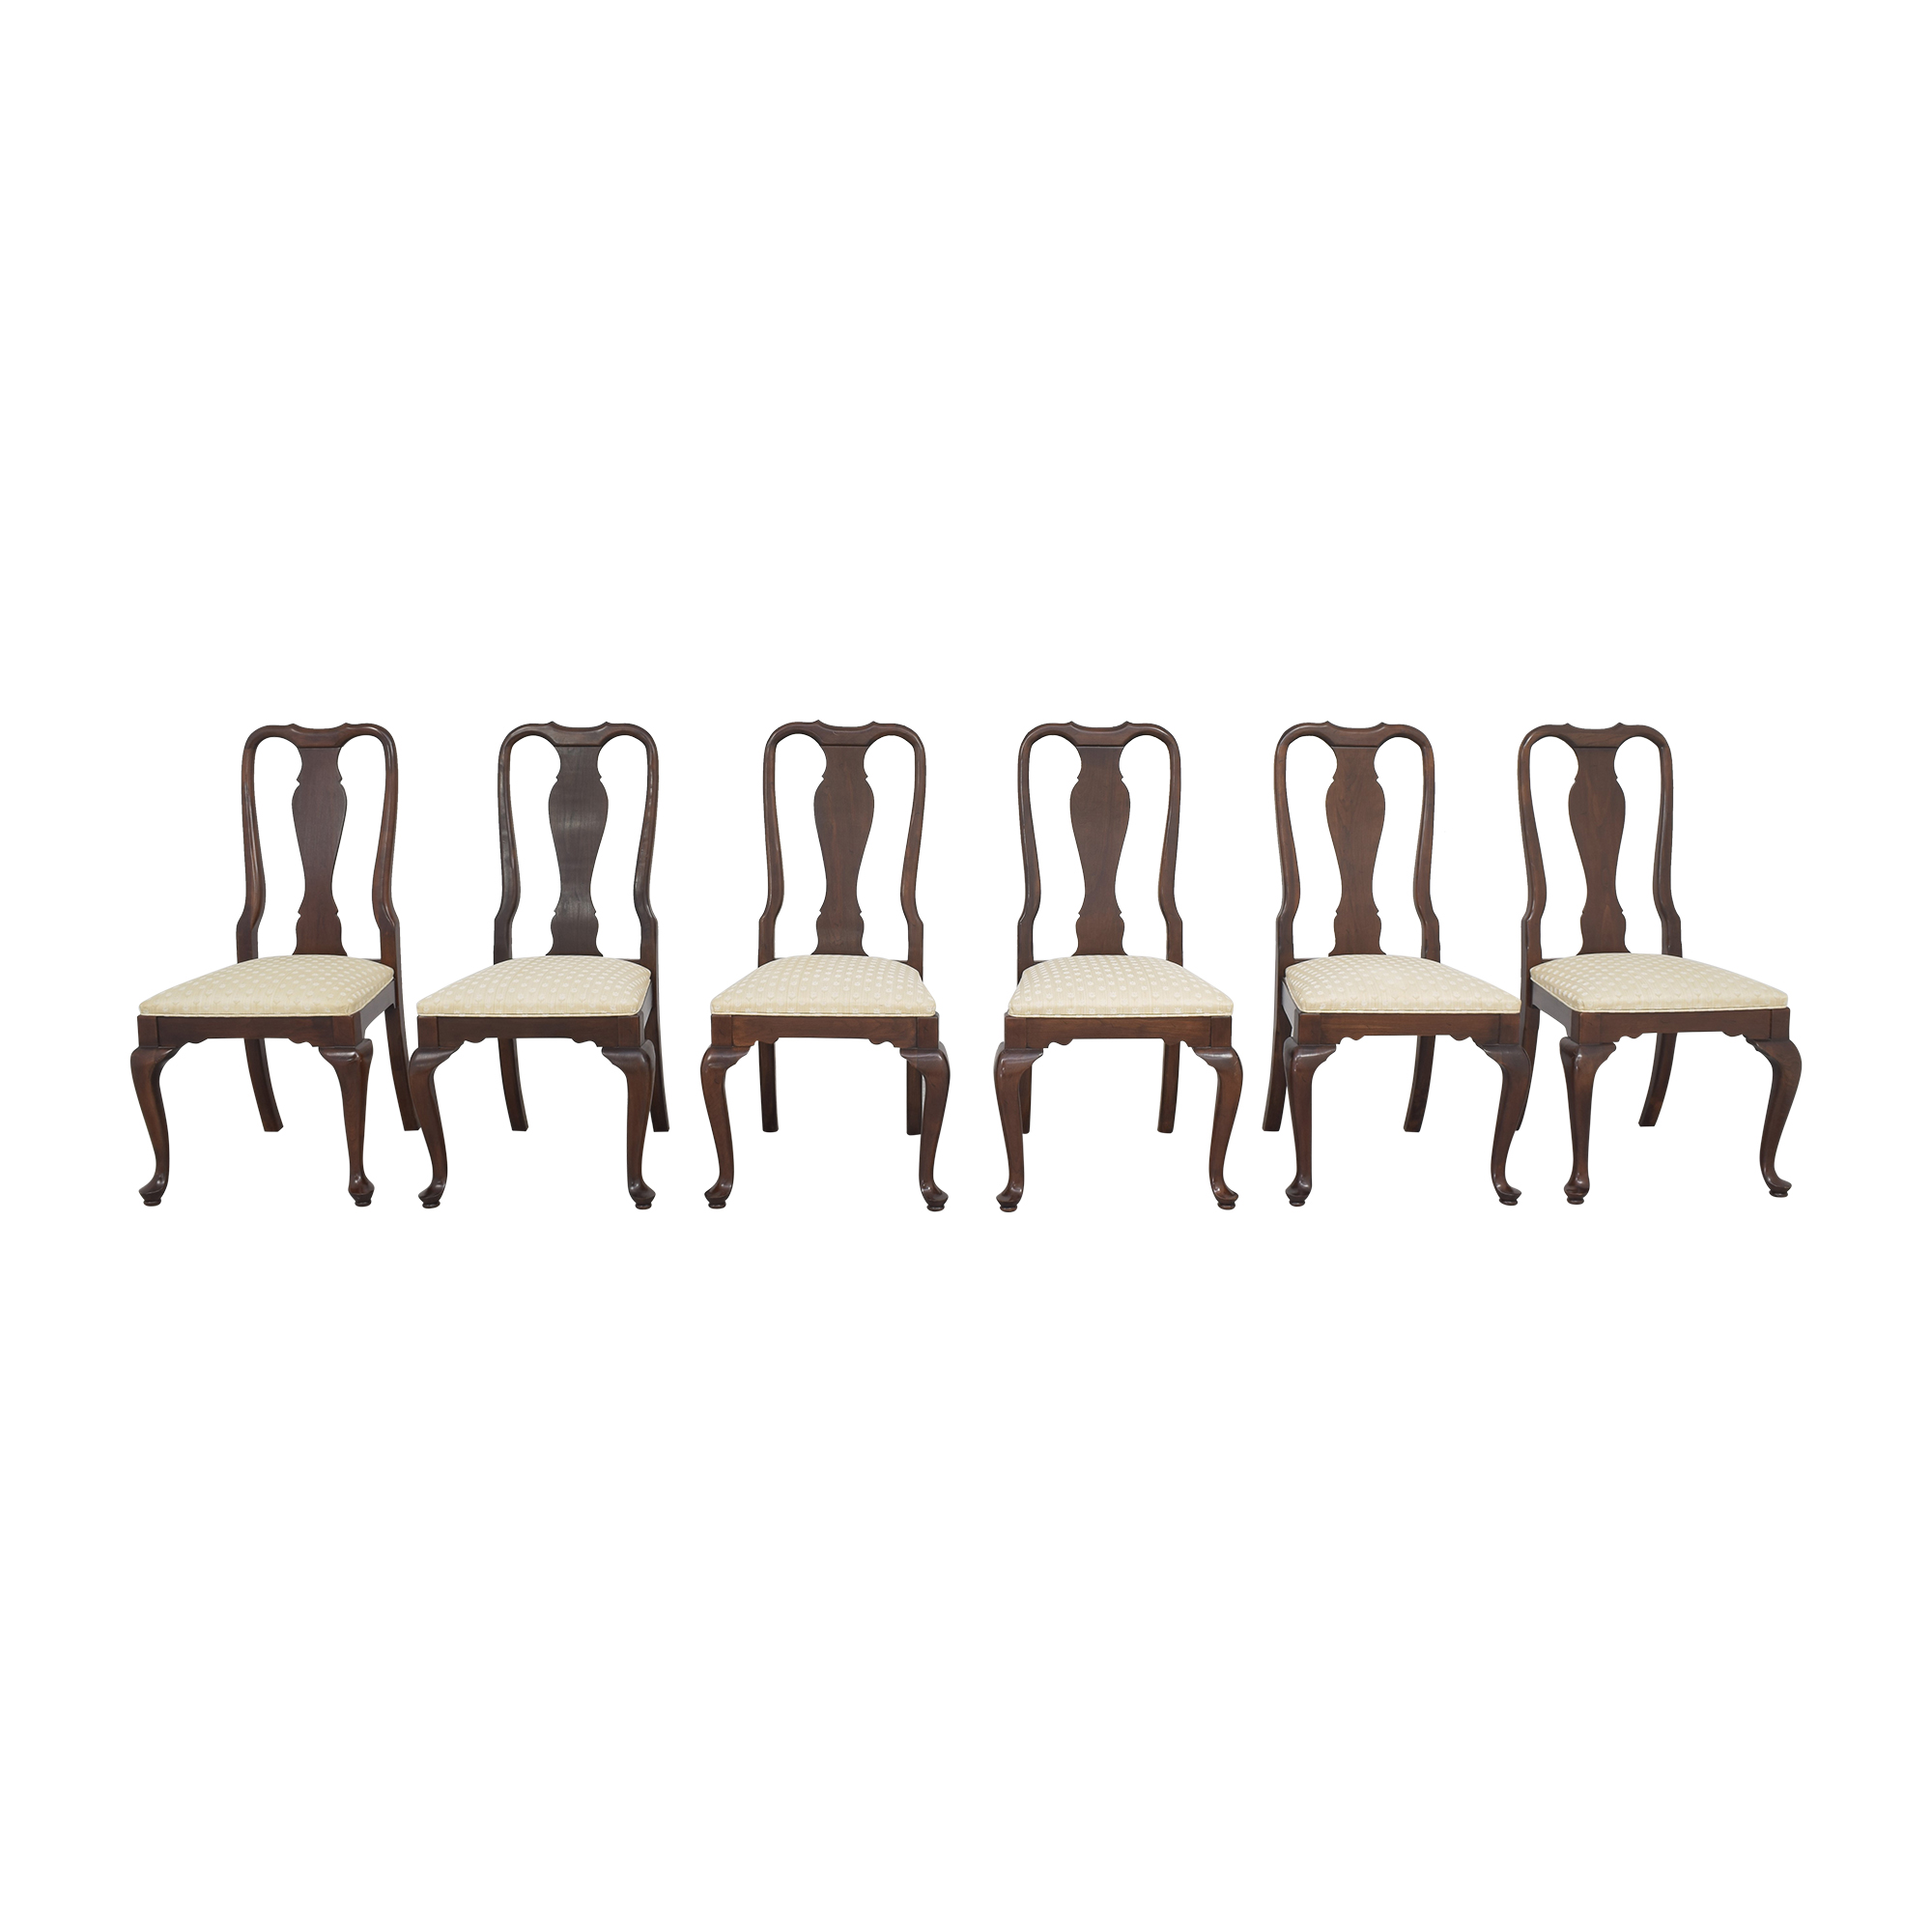 Ethan Allen Ethan Allen Georgian Court Dining Chairs